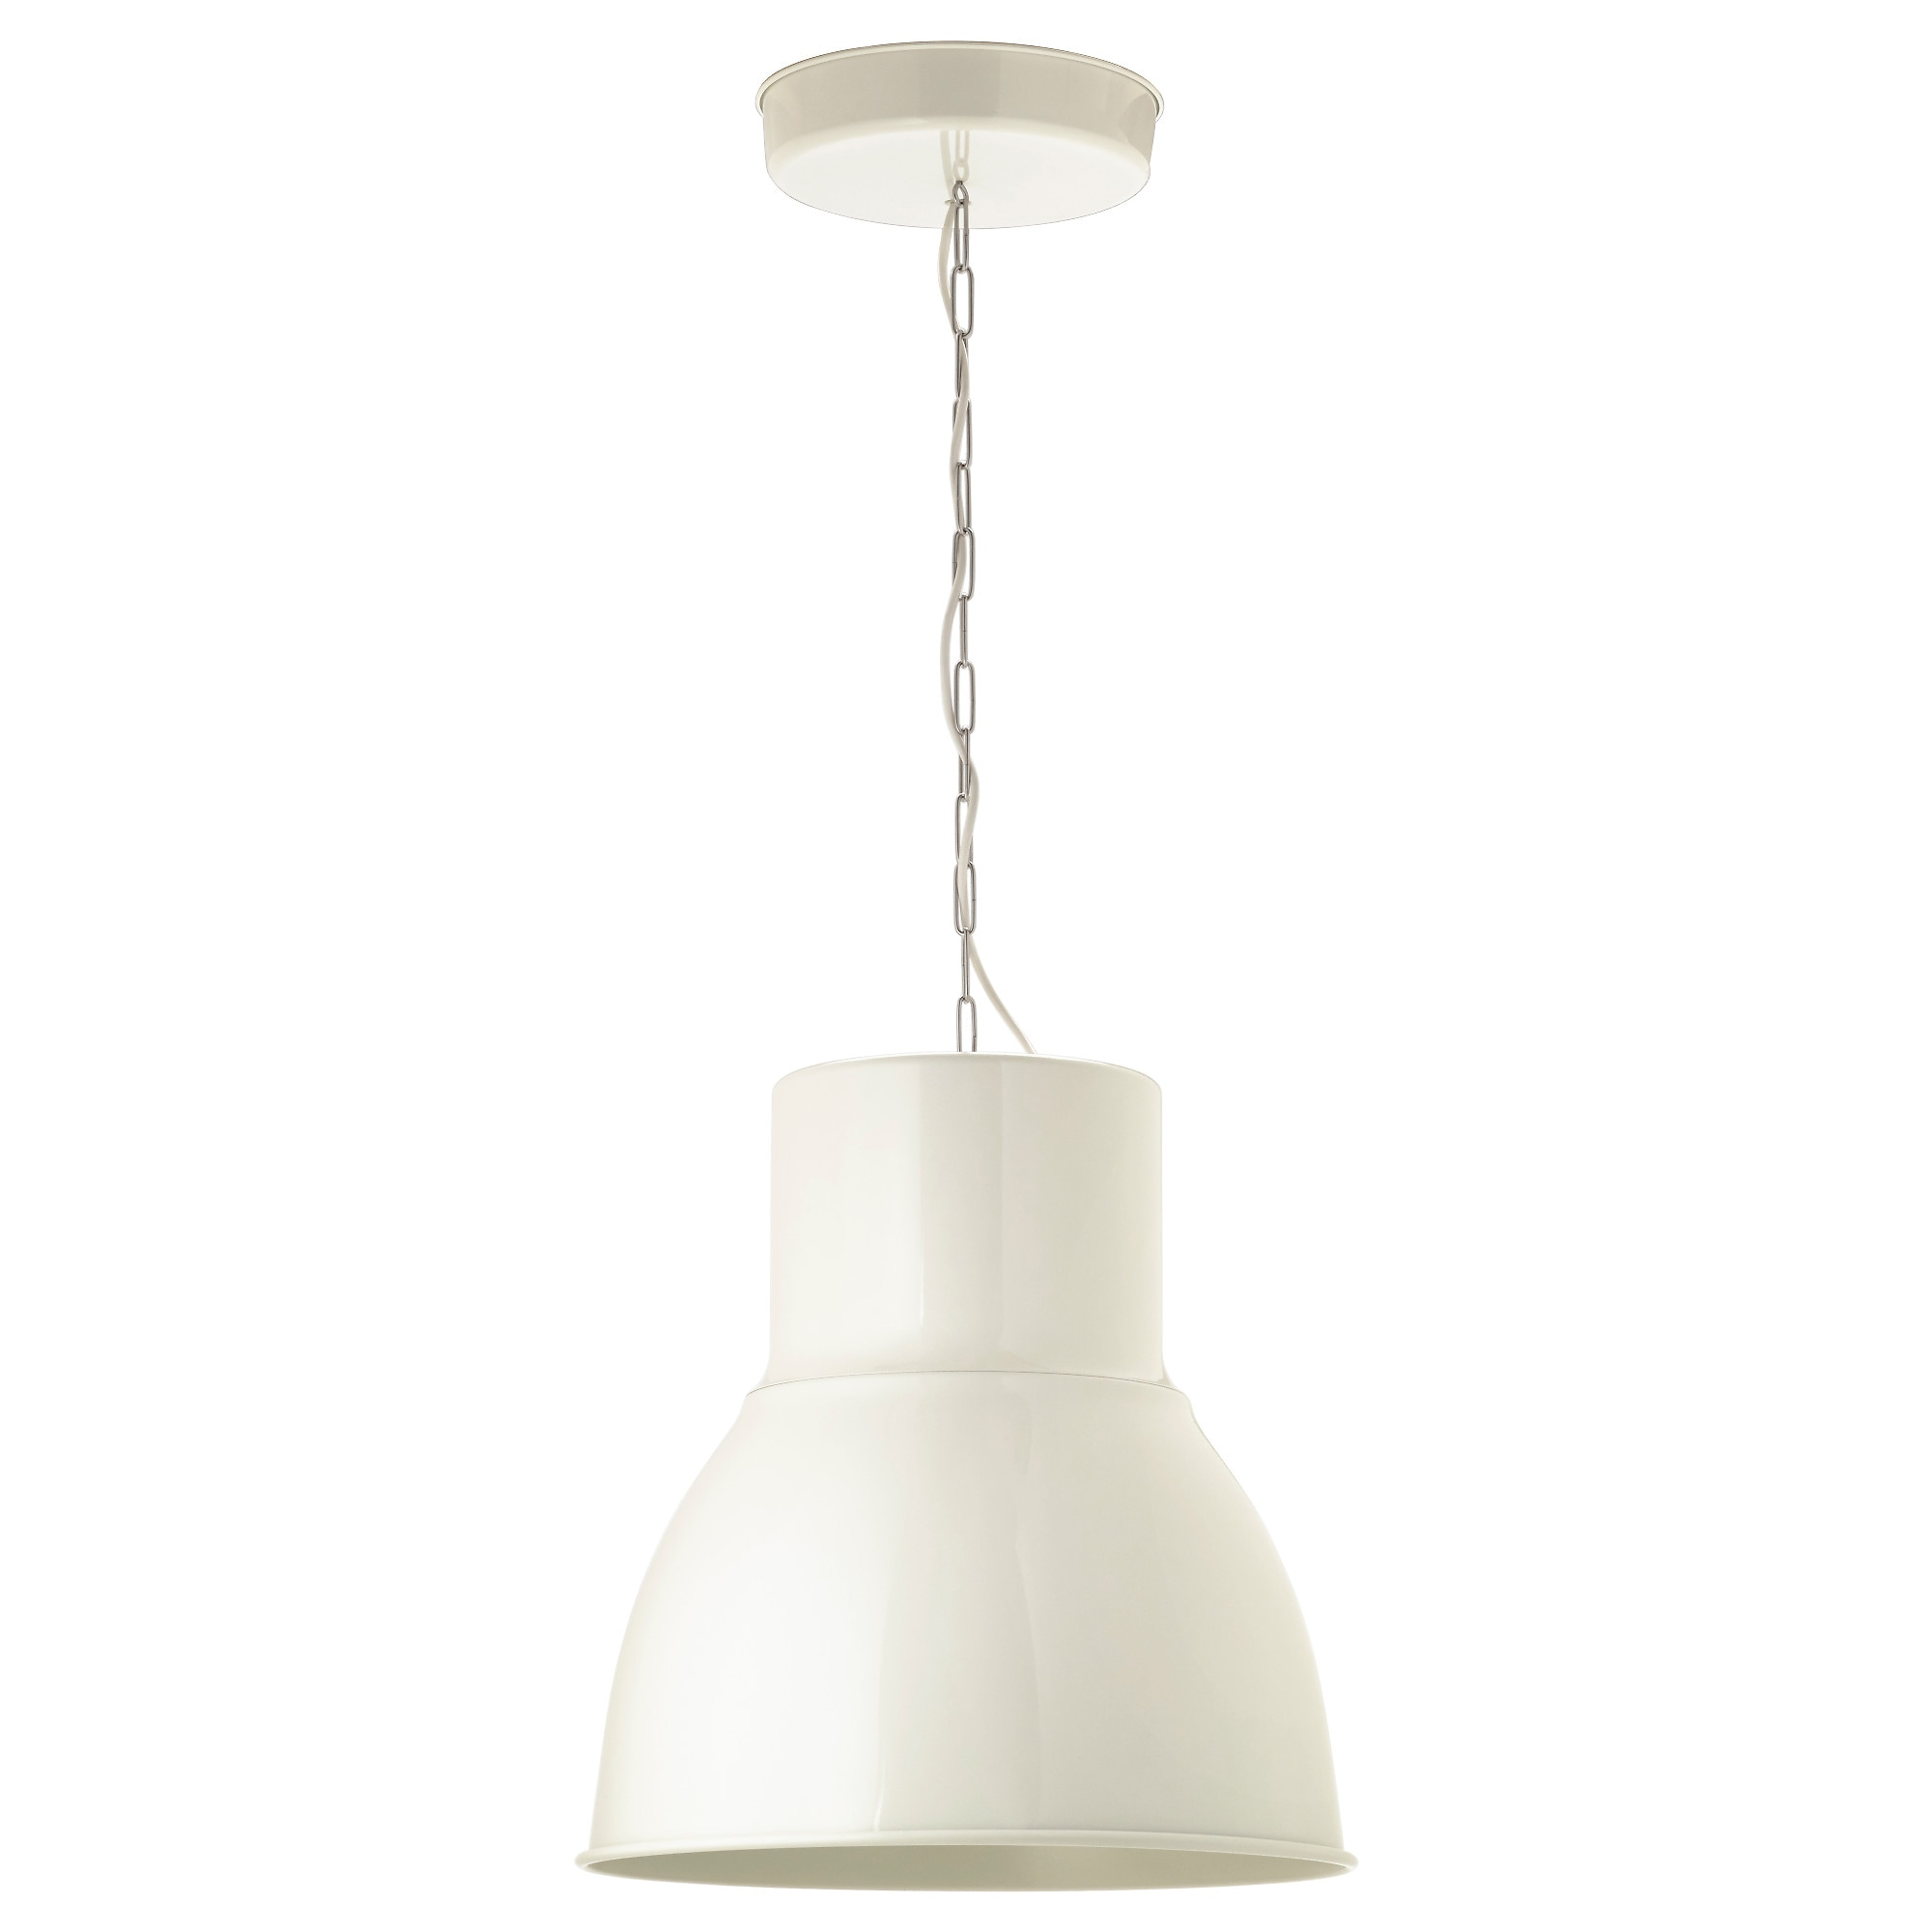 ikea lighting usa. hektar pendant lamp white max 53 w height 19 ikea lighting usa n